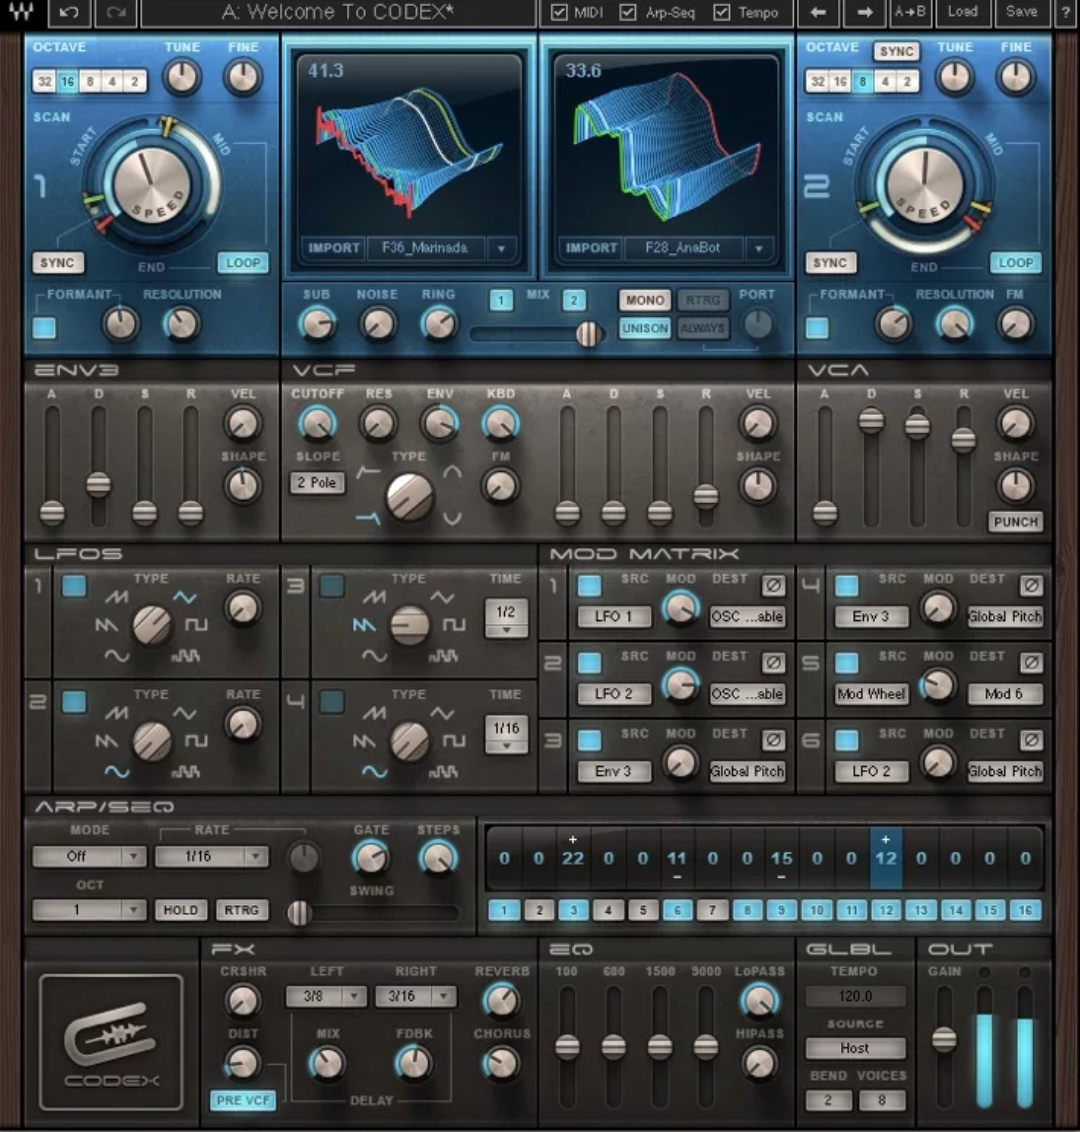 Waves Codex Software Synthesizer